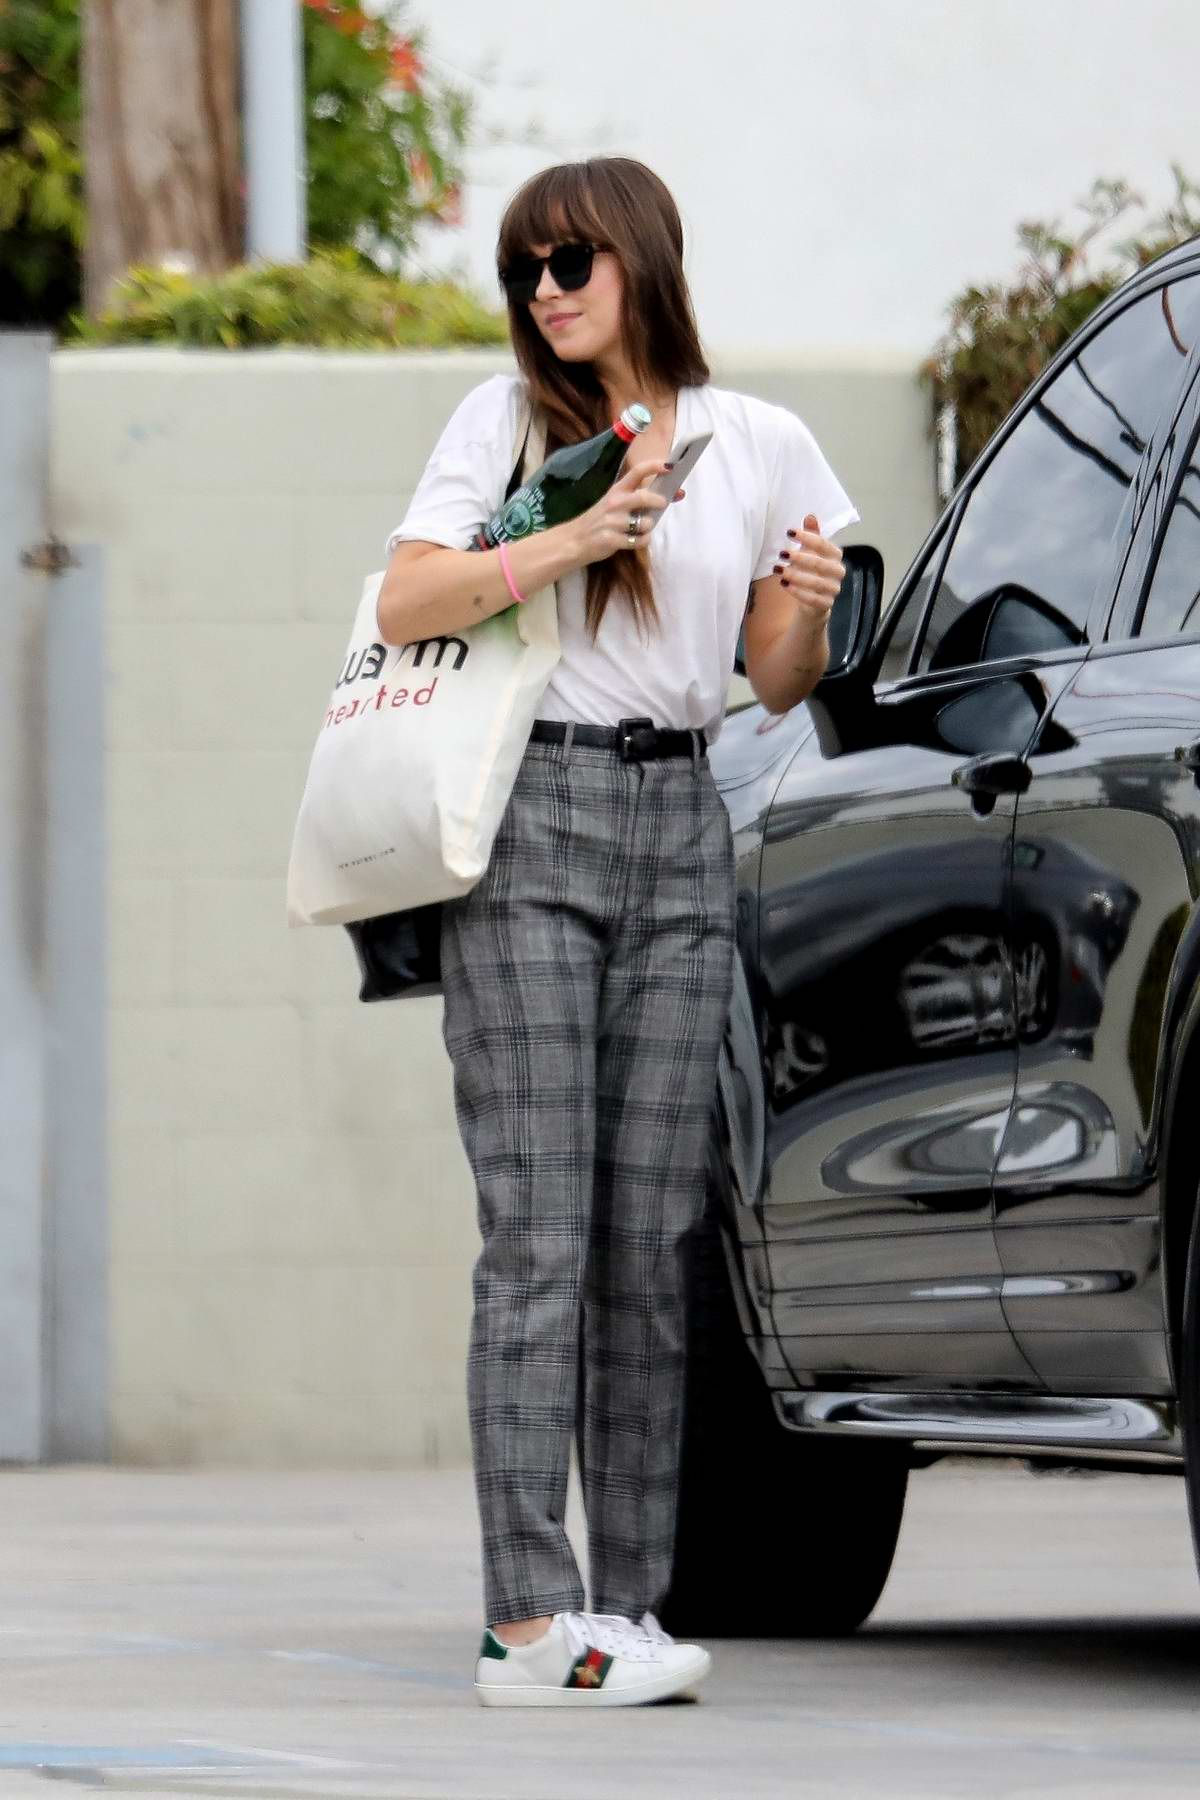 Dakota Johnson wears a white t-shirt with grey plaid pants with Gucci sneakers as she heads to Cabin Editing Company in Santa Monica, California